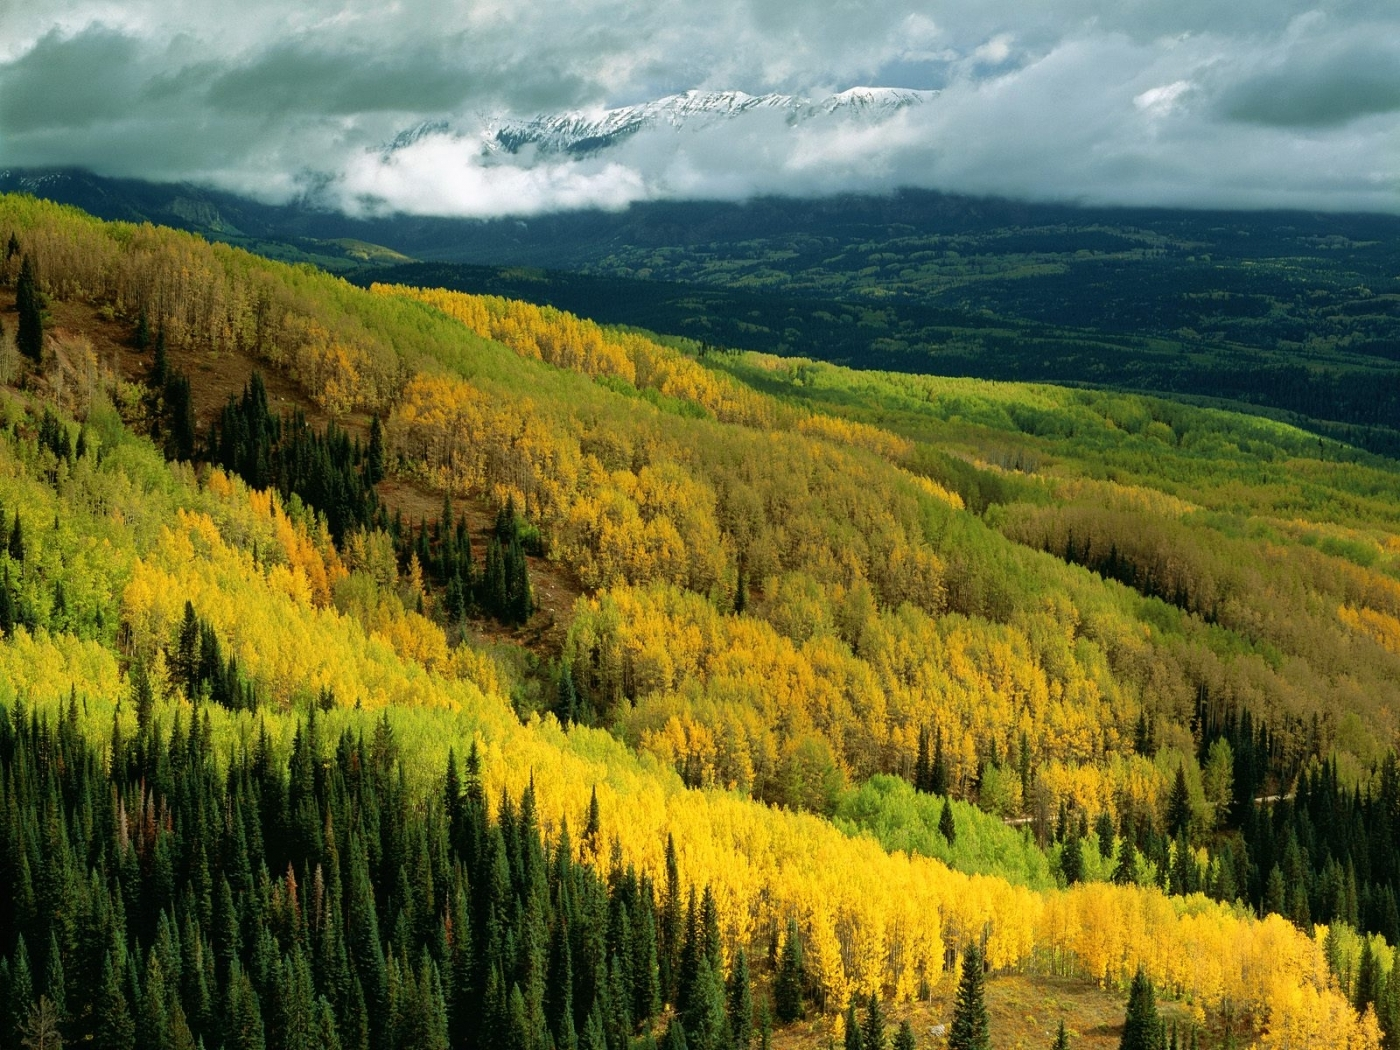 27410 download wallpaper Landscape, Trees, Mountains, Autumn, Clouds screensavers and pictures for free